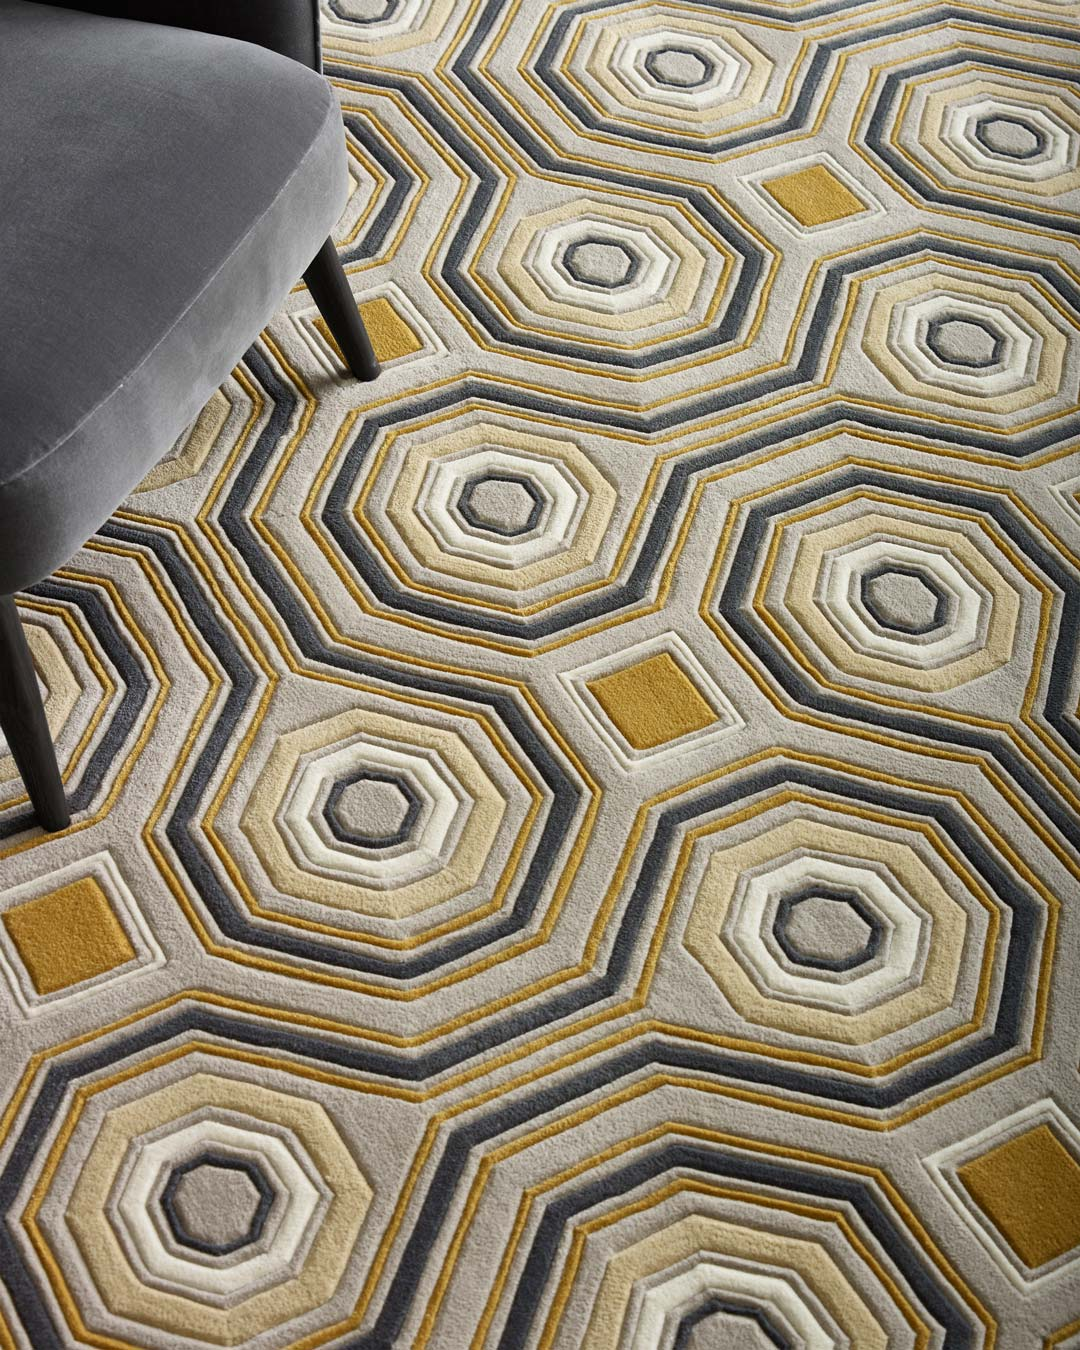 close up of knightsbridge rug by greg natale